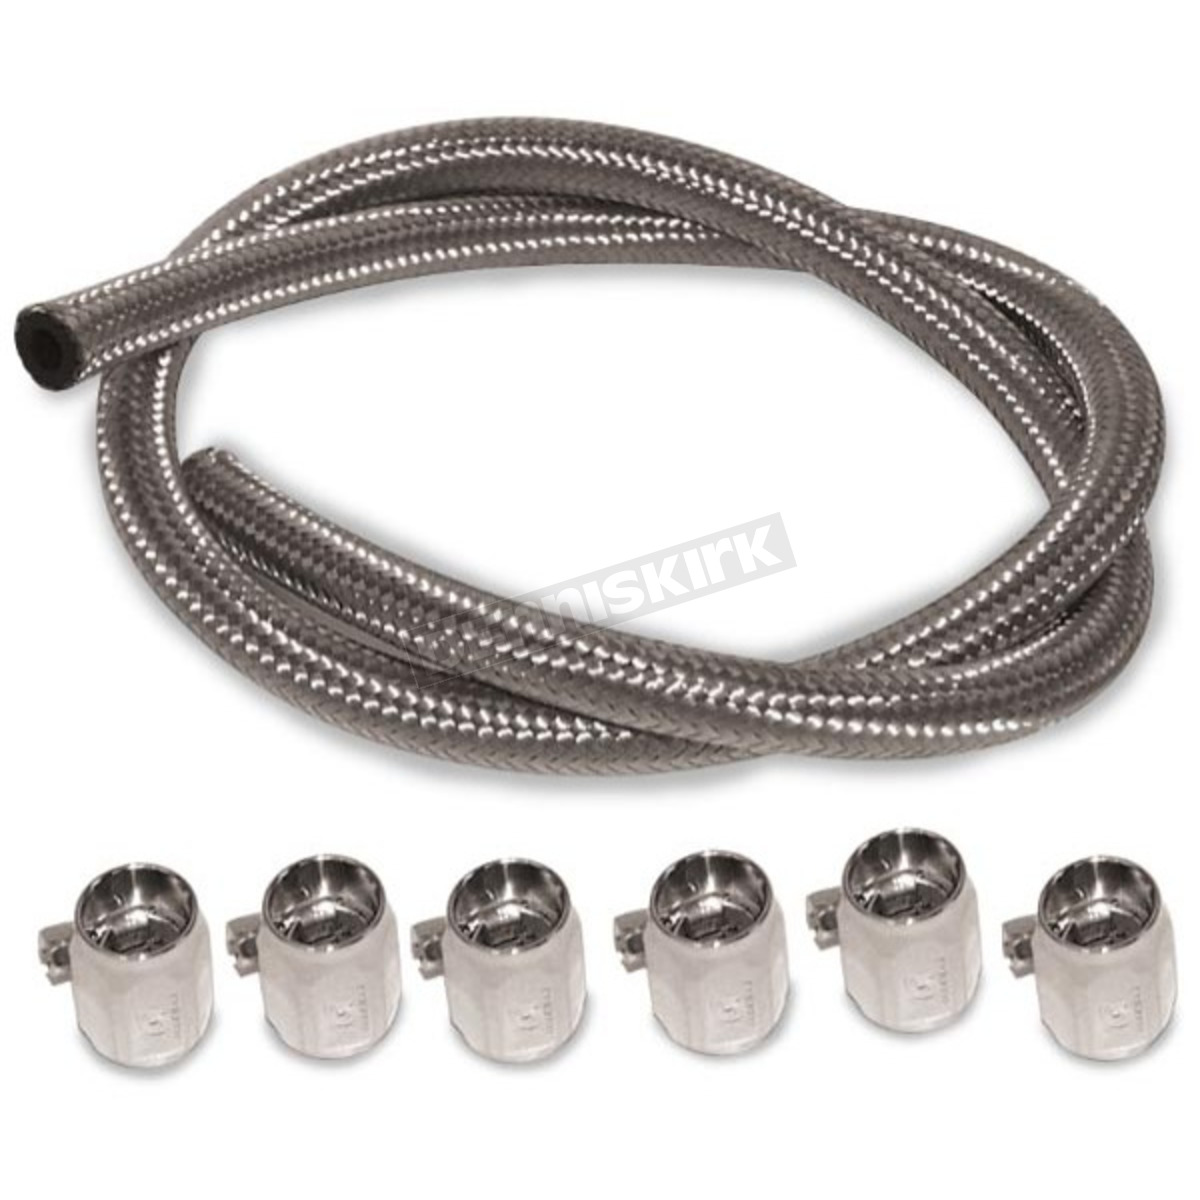 h18541 goodridge 5 16 in stainless steel braided fuel line kit for custom